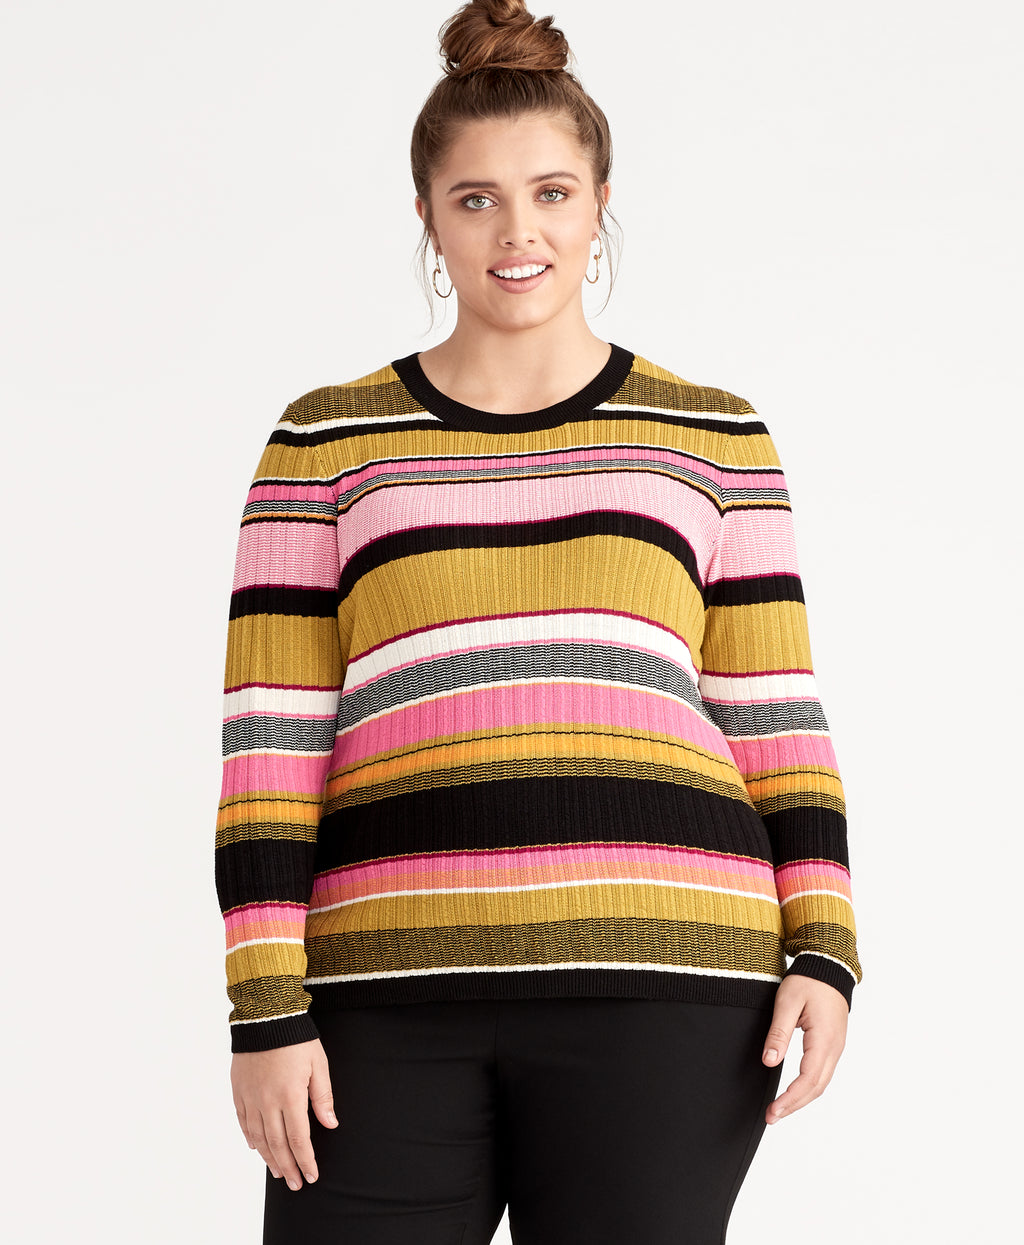 KENNEDY SWEATER | OKRA STRIPE COMBO